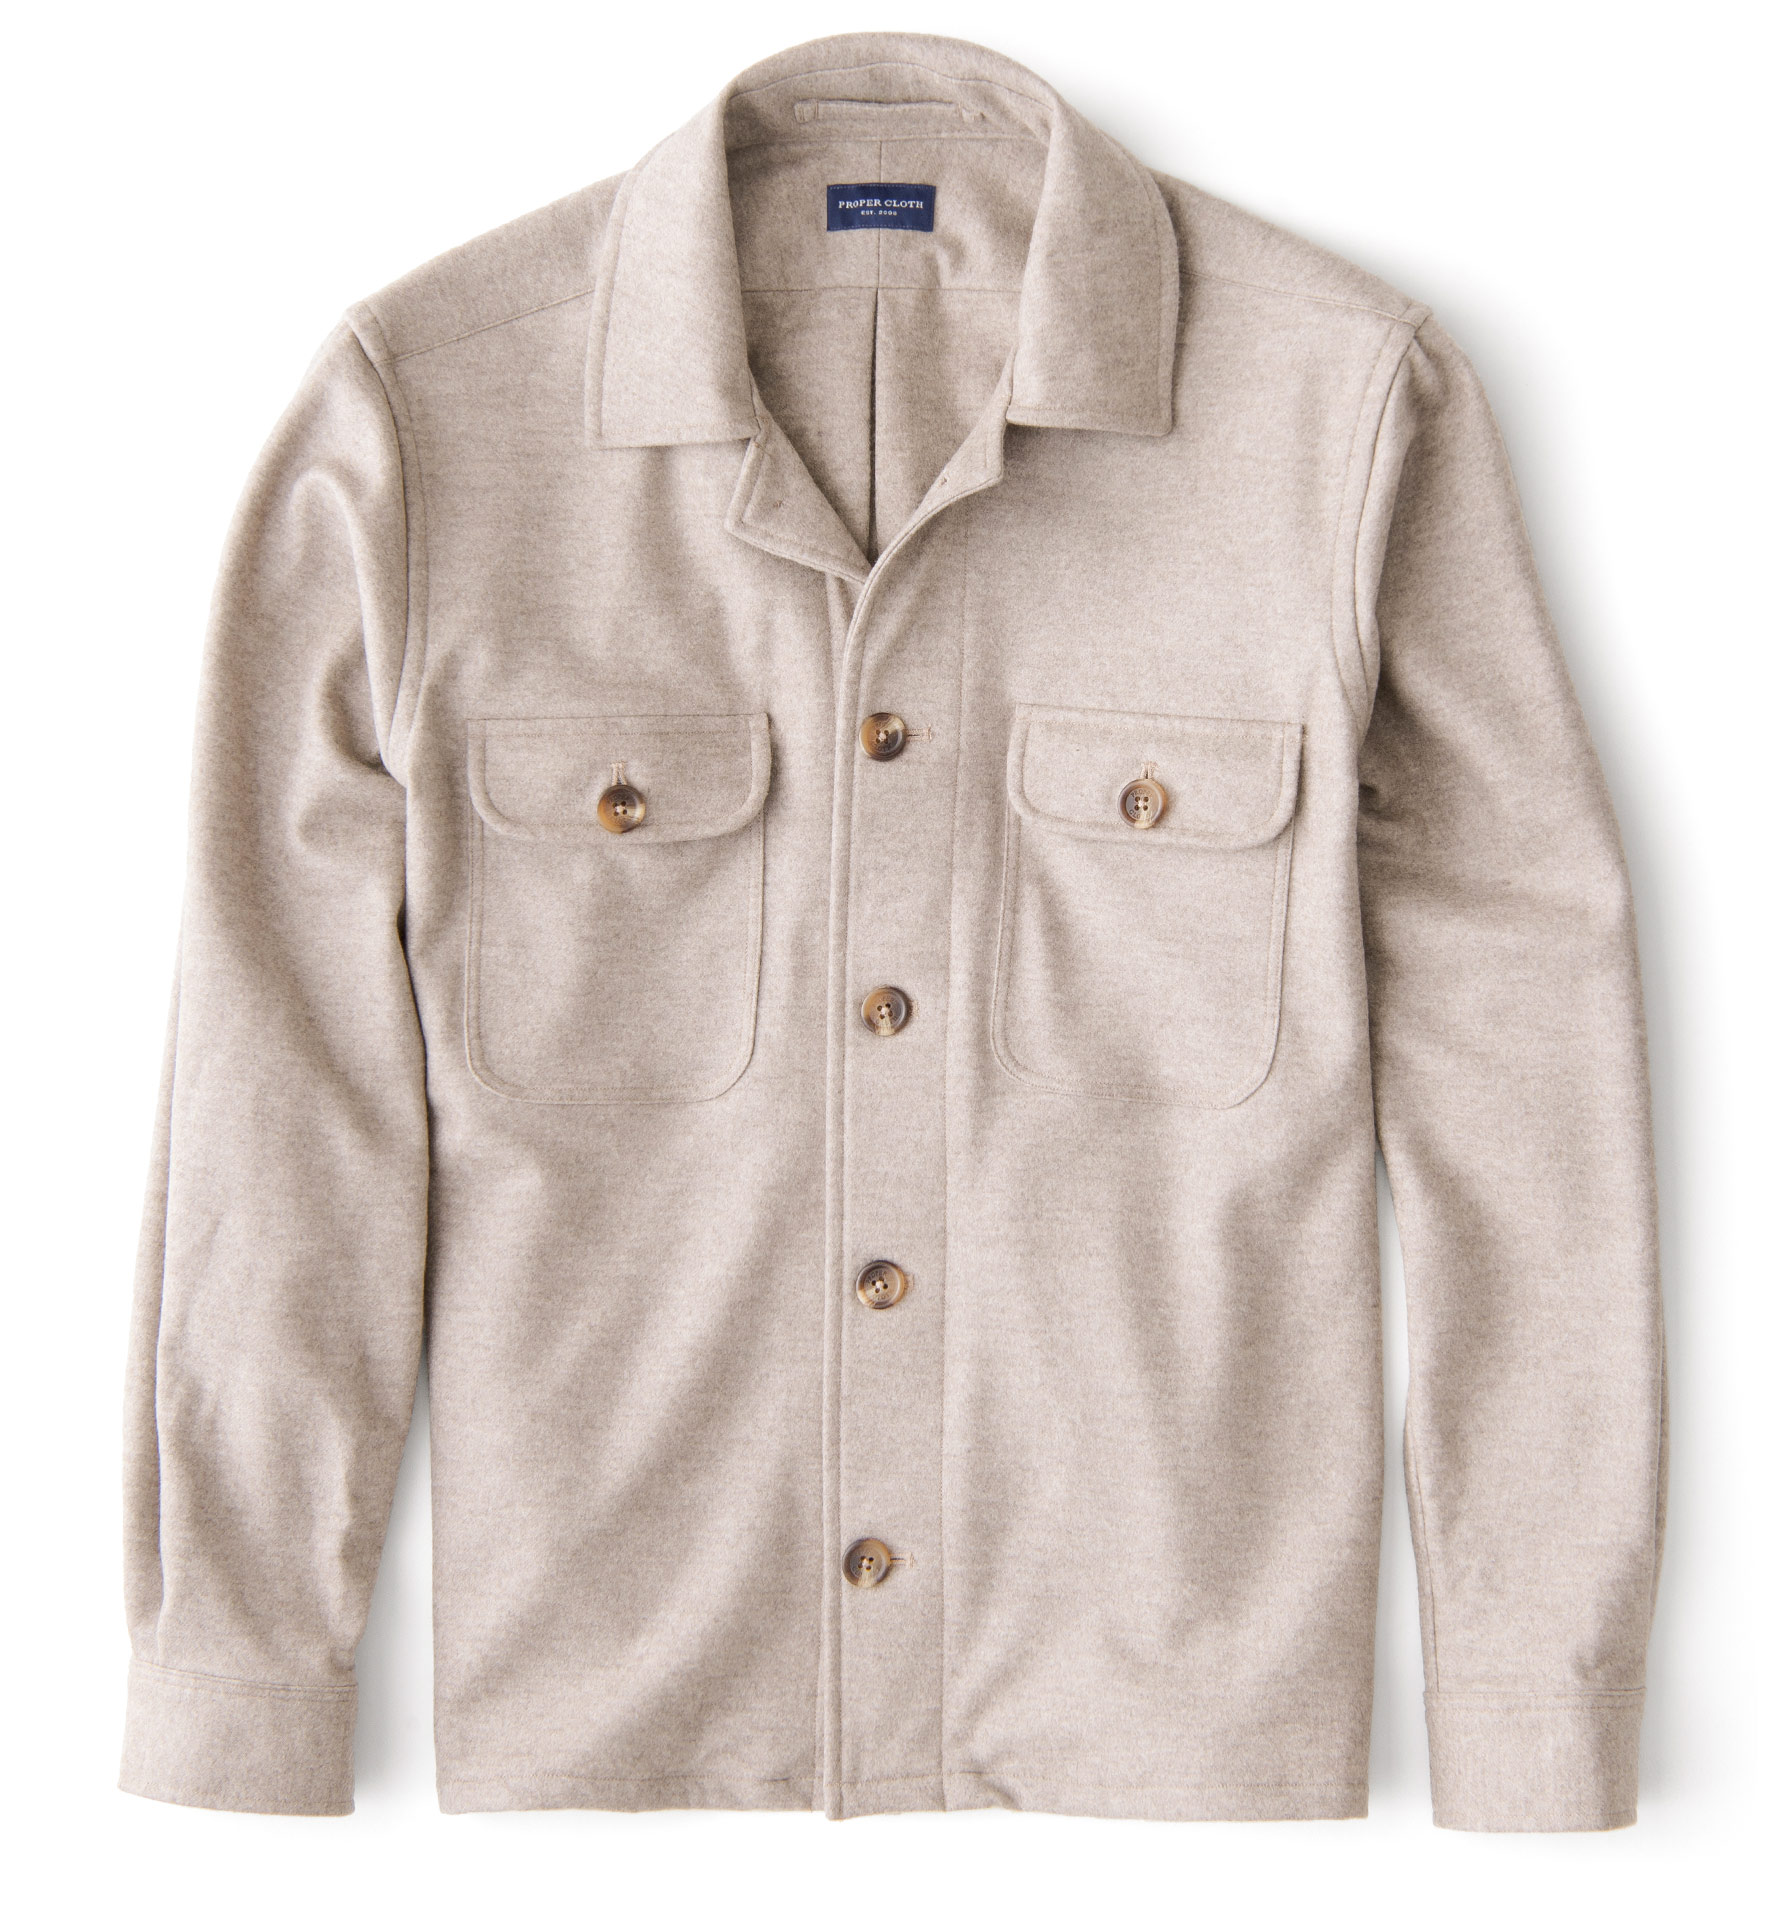 Zoom Image of Beige Wool and Cashmere Knit Overshirt